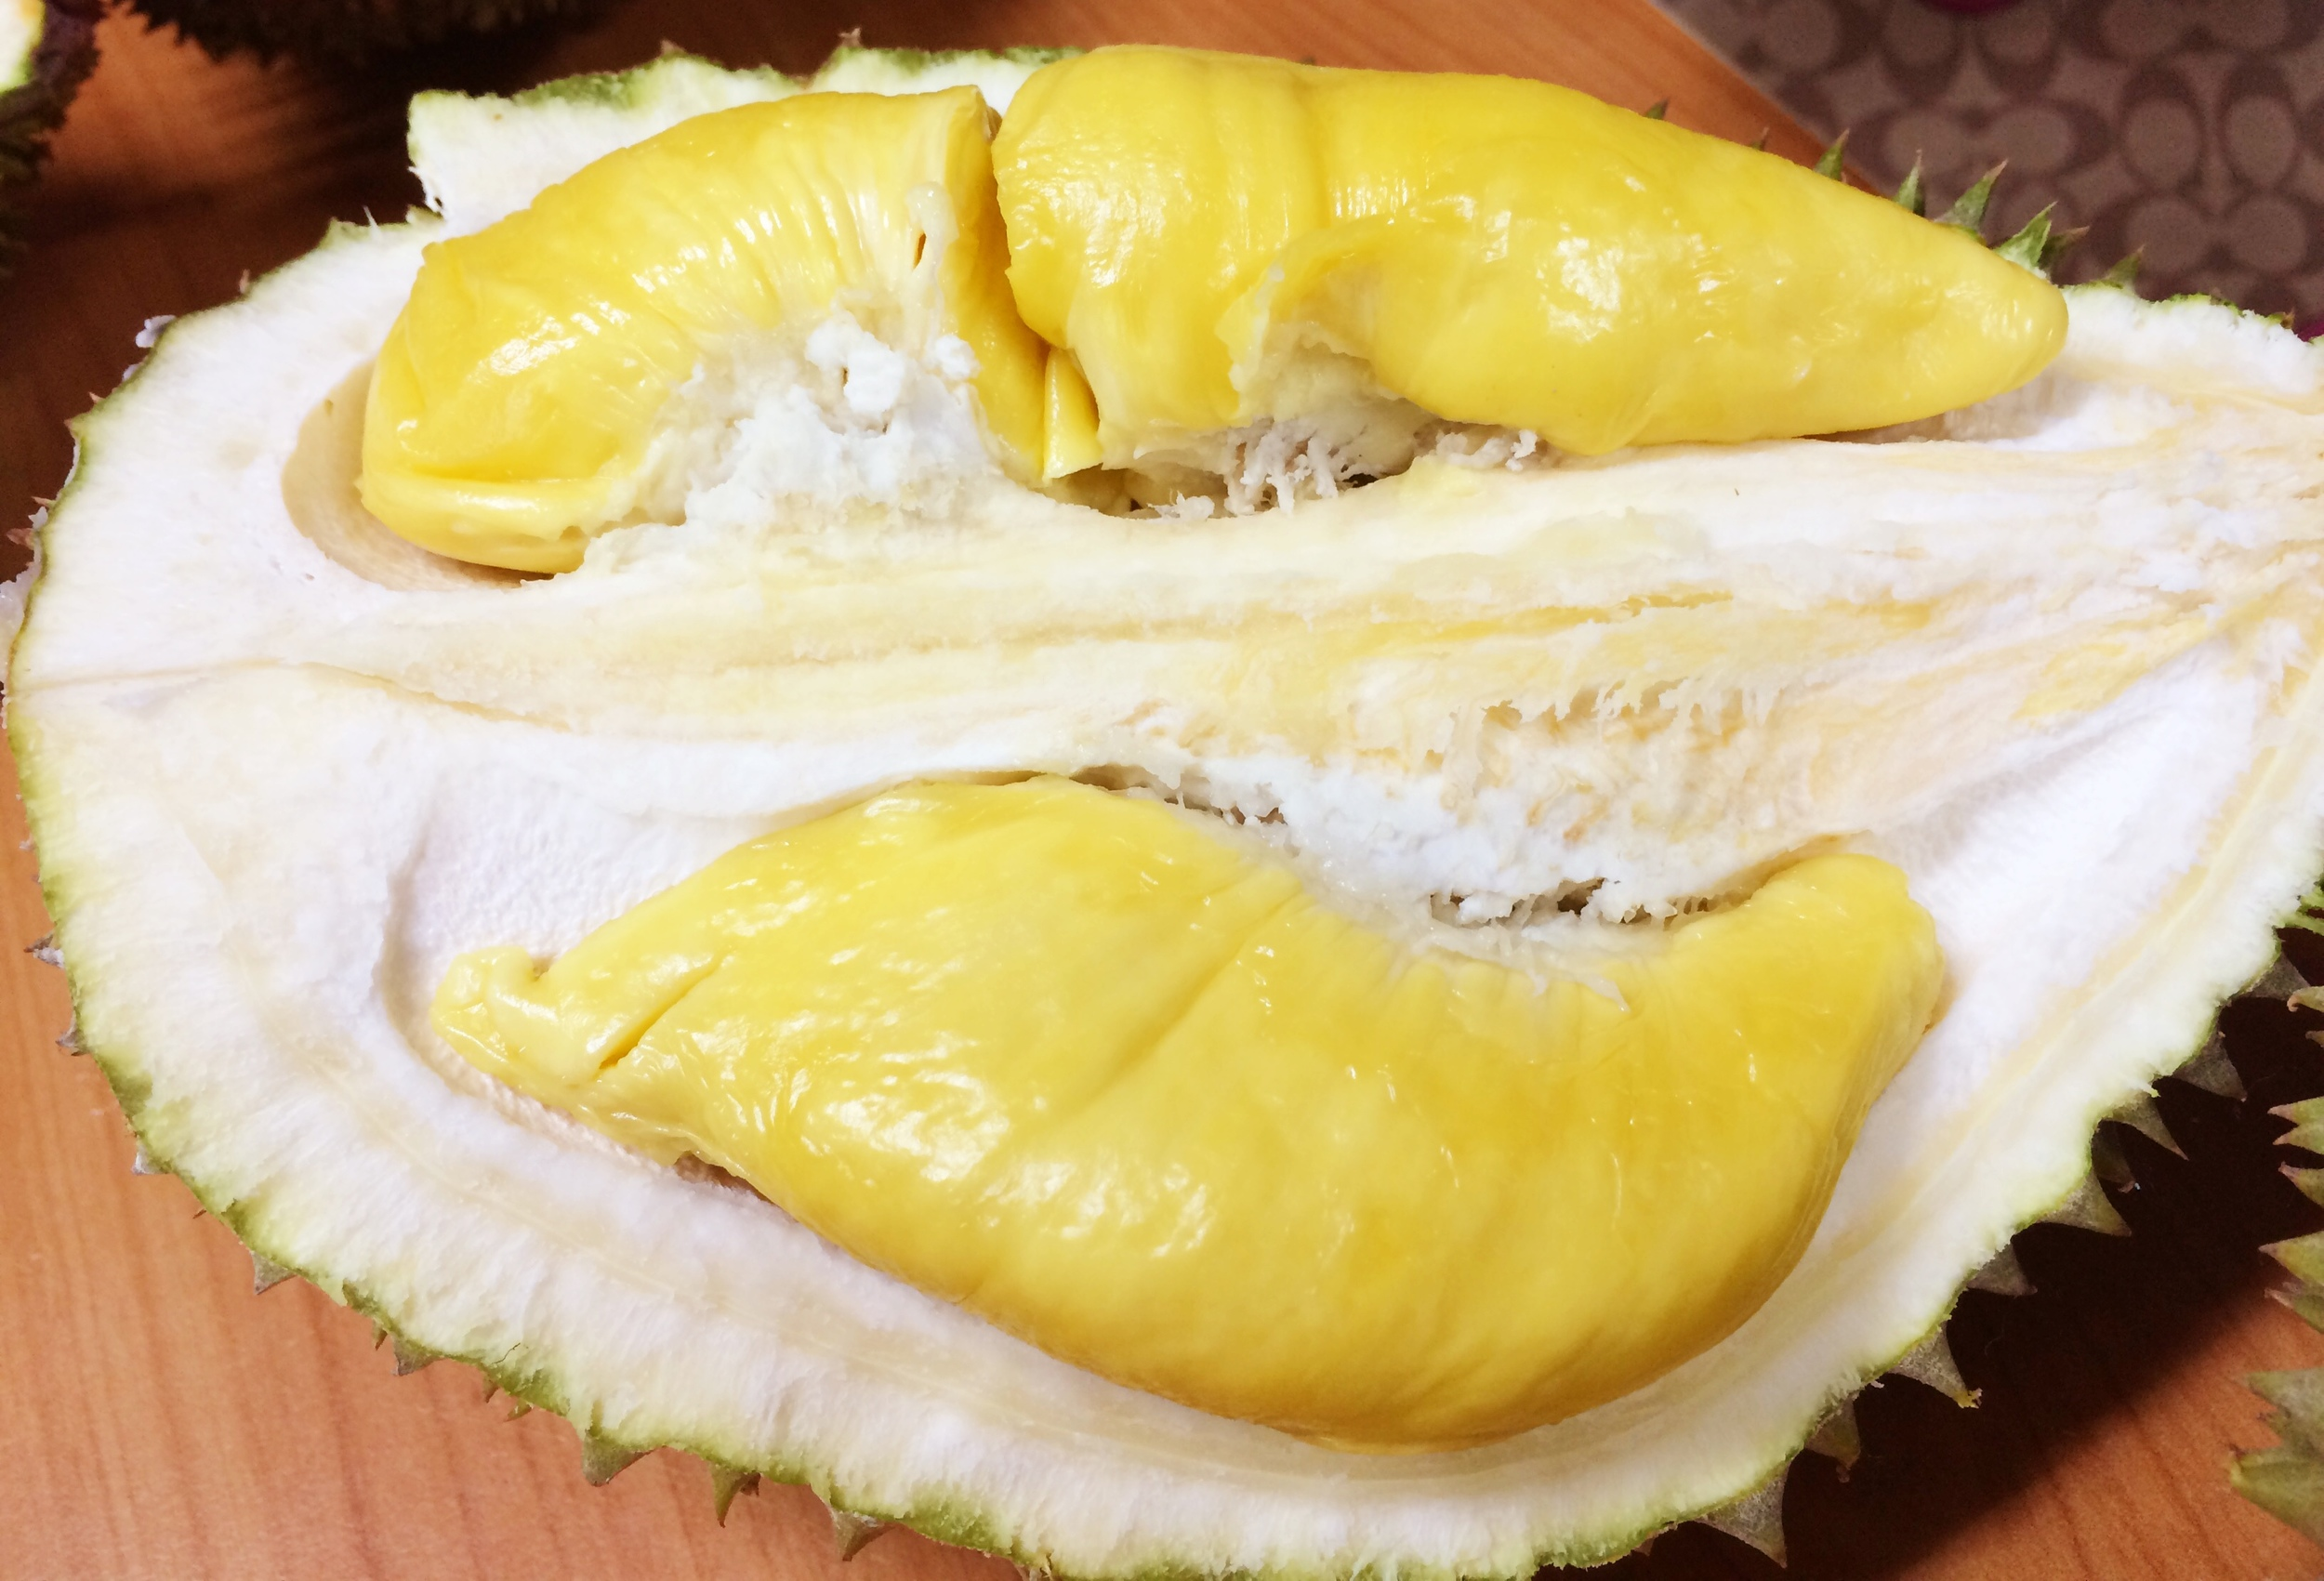 Durian (King of Fruits!): Ah Seng Durian: Ghim Moh Market, currently at Blk 150A Ghim Moh Temporary Market #01-64, Singapore